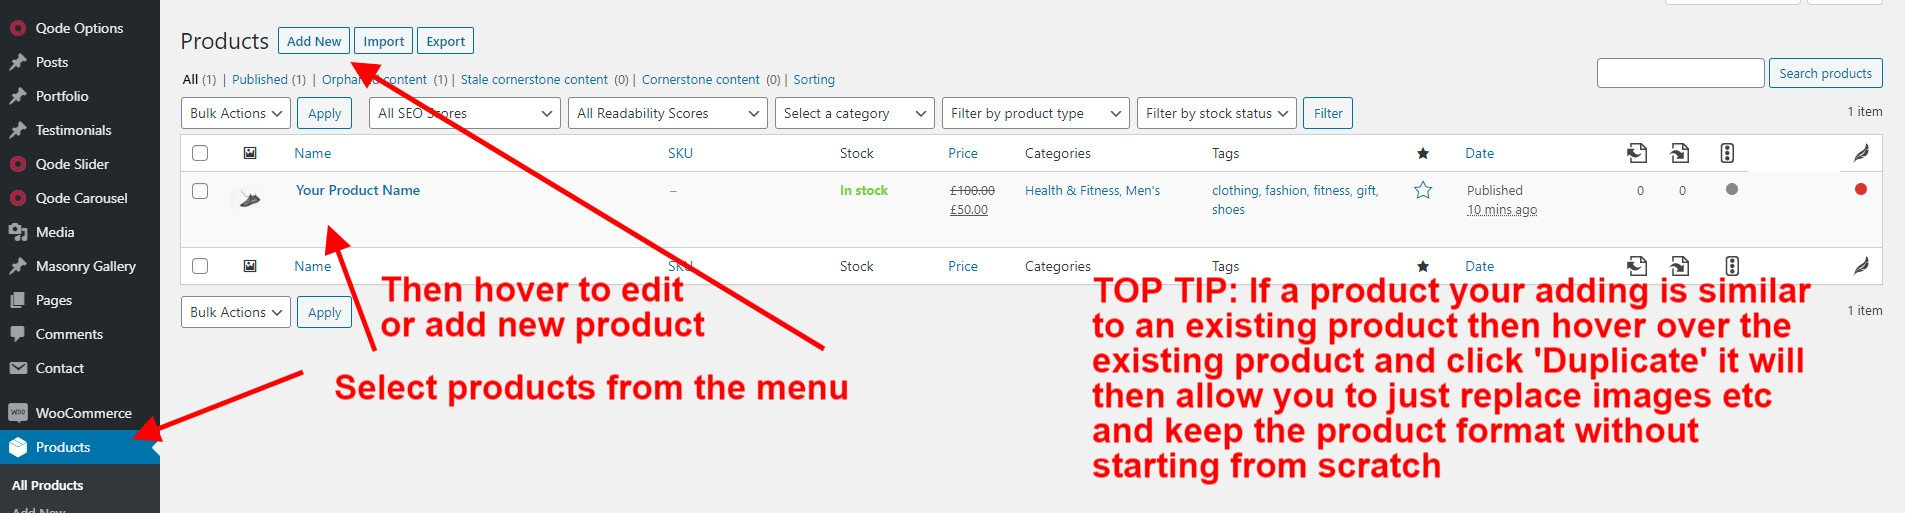 WooCommerce Guide The Product Area